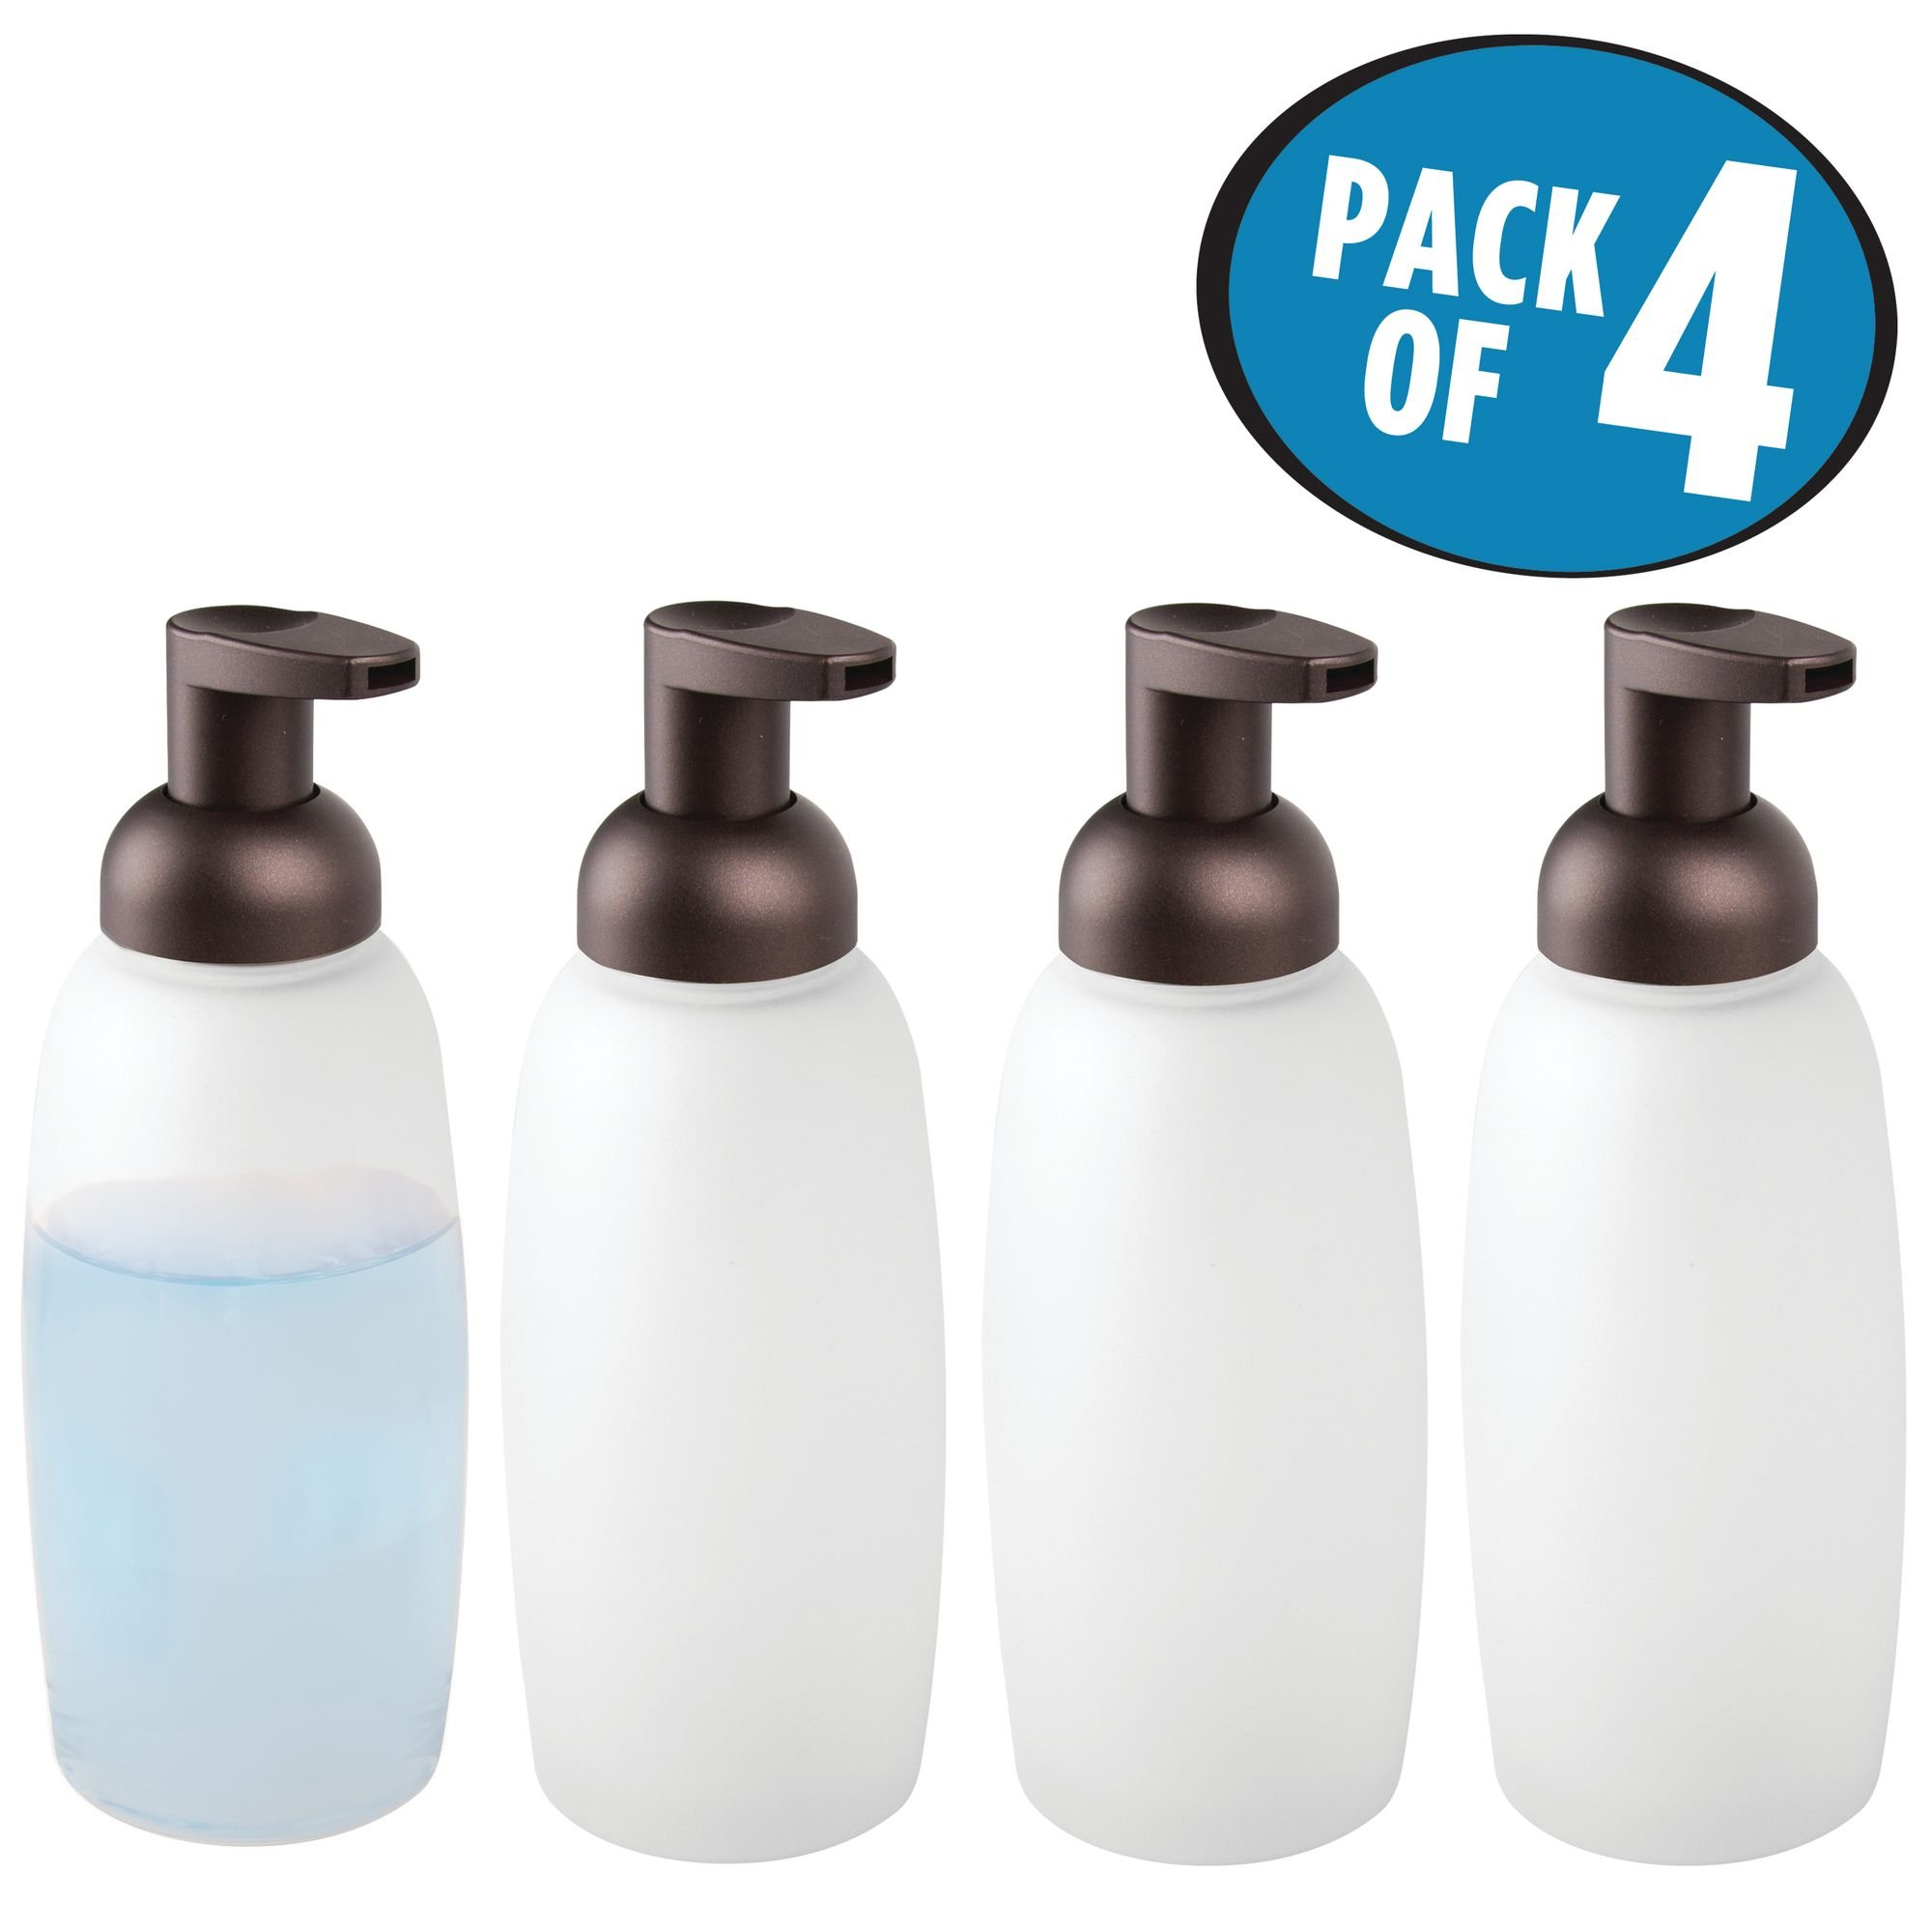 mDesign Modern Glass Refillable Foaming Soap Dispenser Pump Bottle for Bathroom Vanities or Kitchen Sink, Countertops - Pack of 4, Frost with Bronze Pump Head